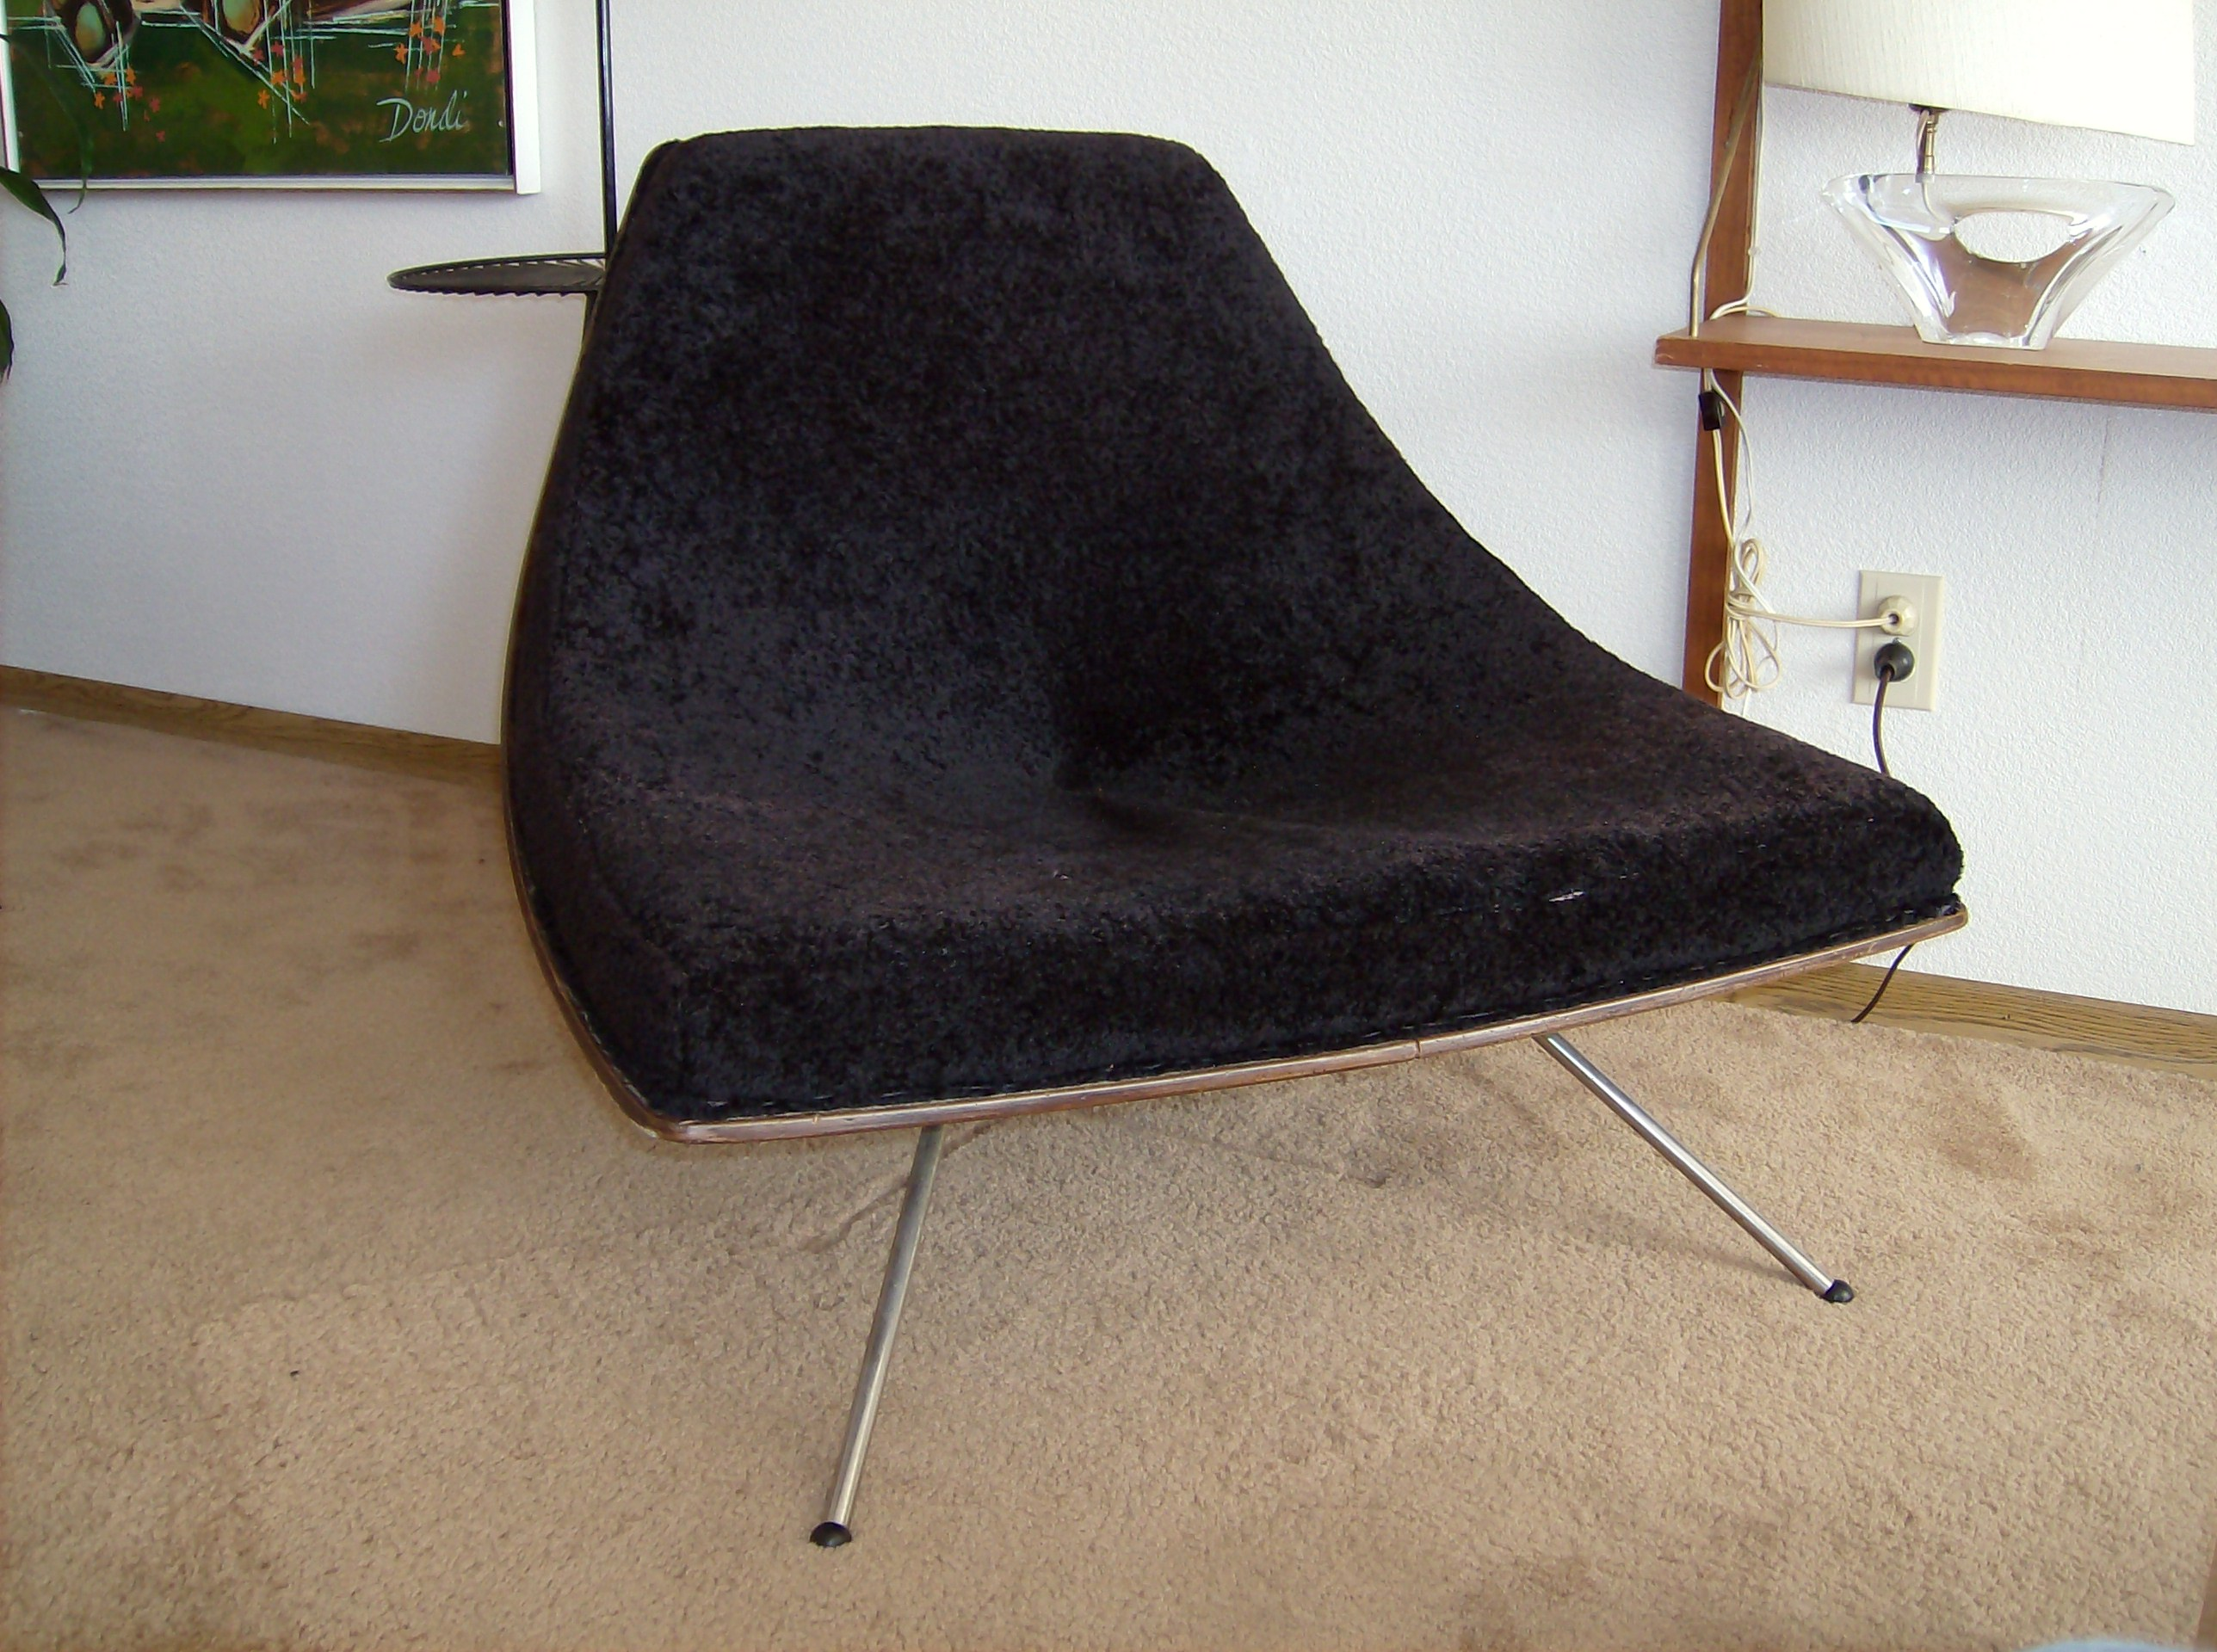 Arguably one of the most Iconic Canadian designs   the Winnipeg chair  designed and Manufactured by. The Fabulous Find   Mid Century Modern Furniture Showroom in